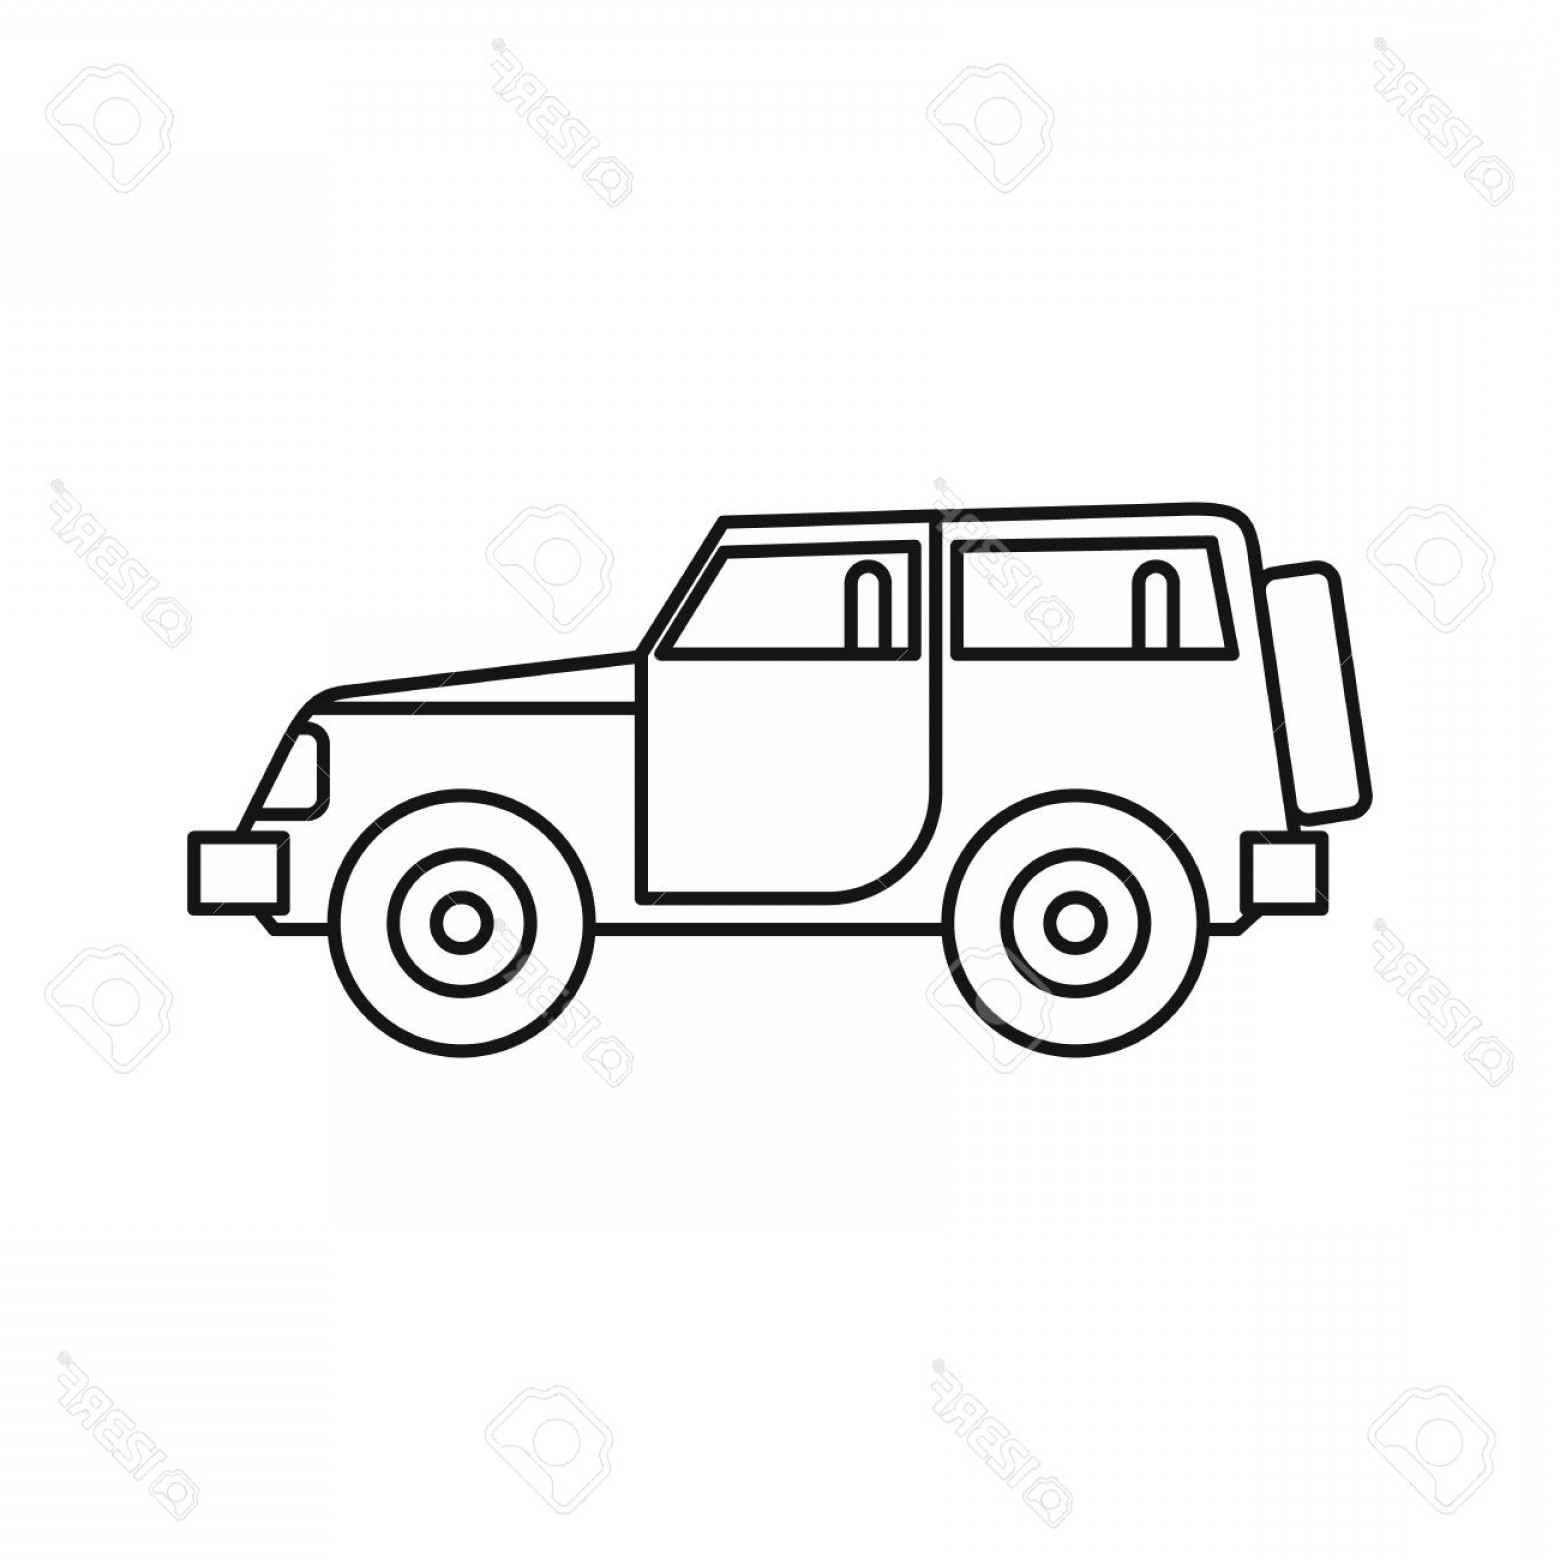 Vector Clip Art Of Jeep: Photostock Vector Jeep Icon In Outline Style On A White Background Vector Illustration